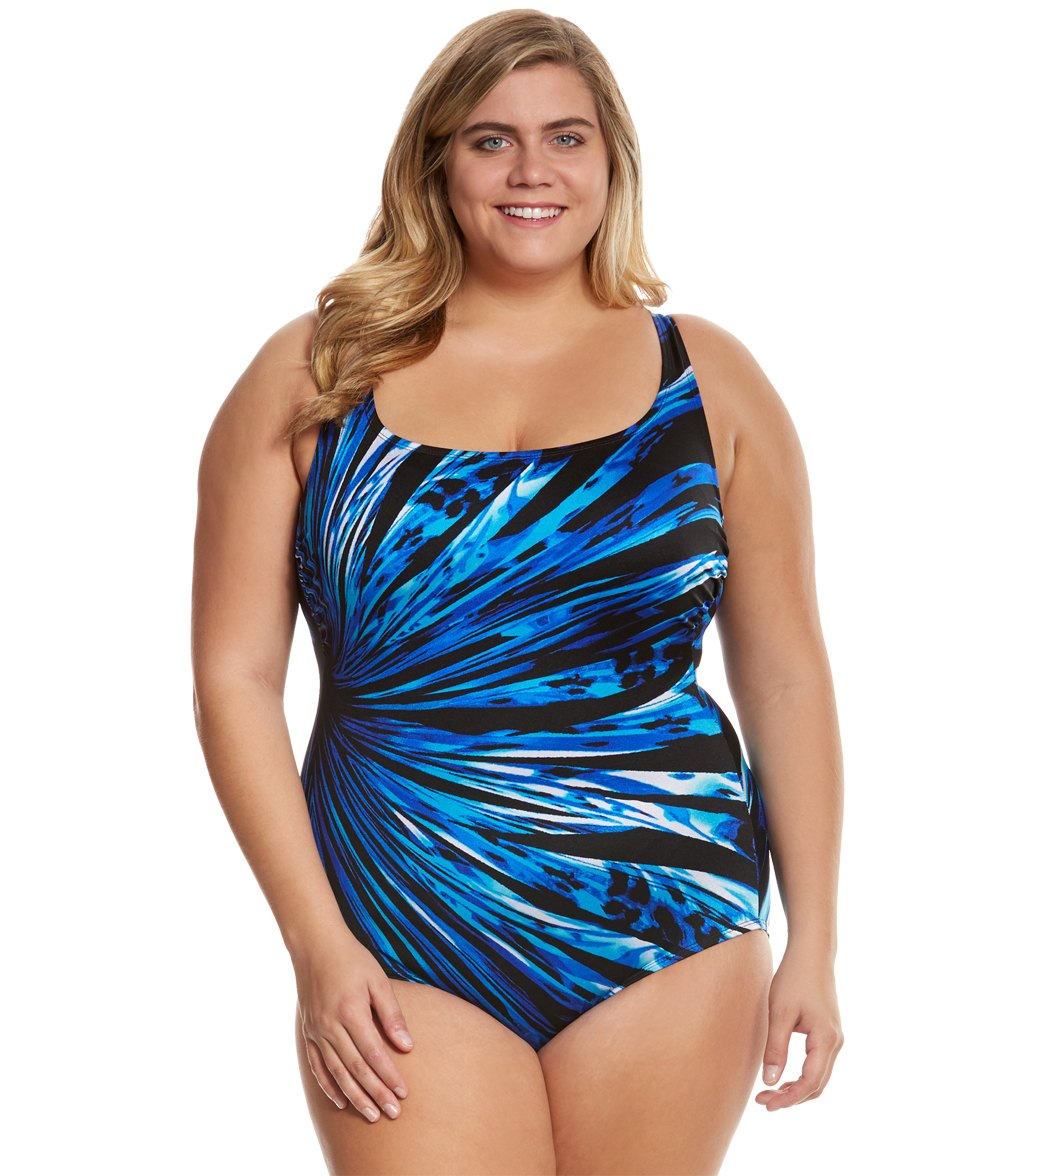 33633266dbc1e How to Choose Flattering Plus Size Swimwear